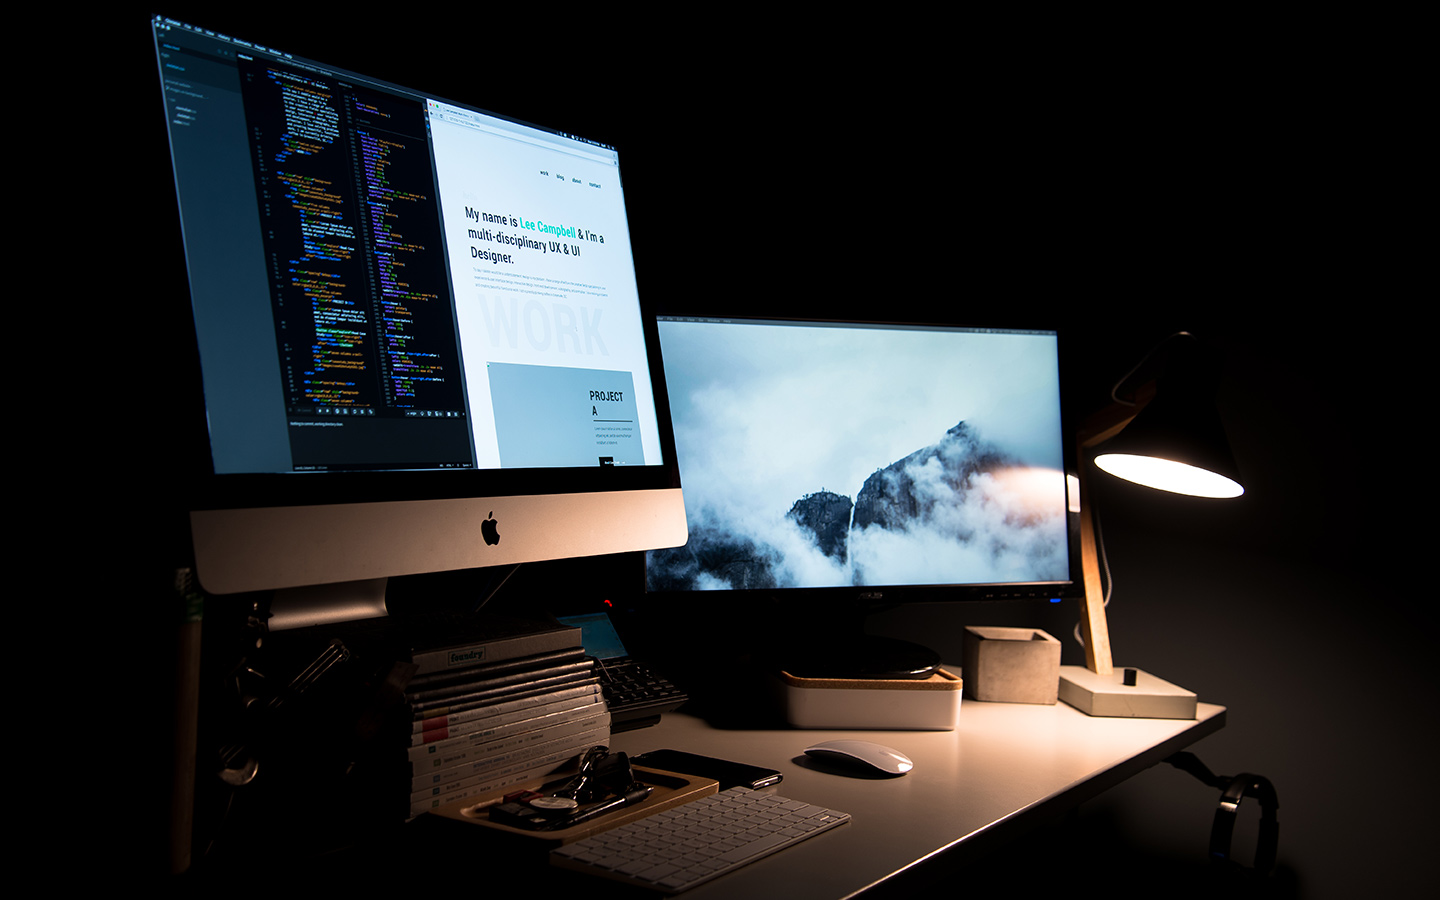 apple desktop with a beam light on the table